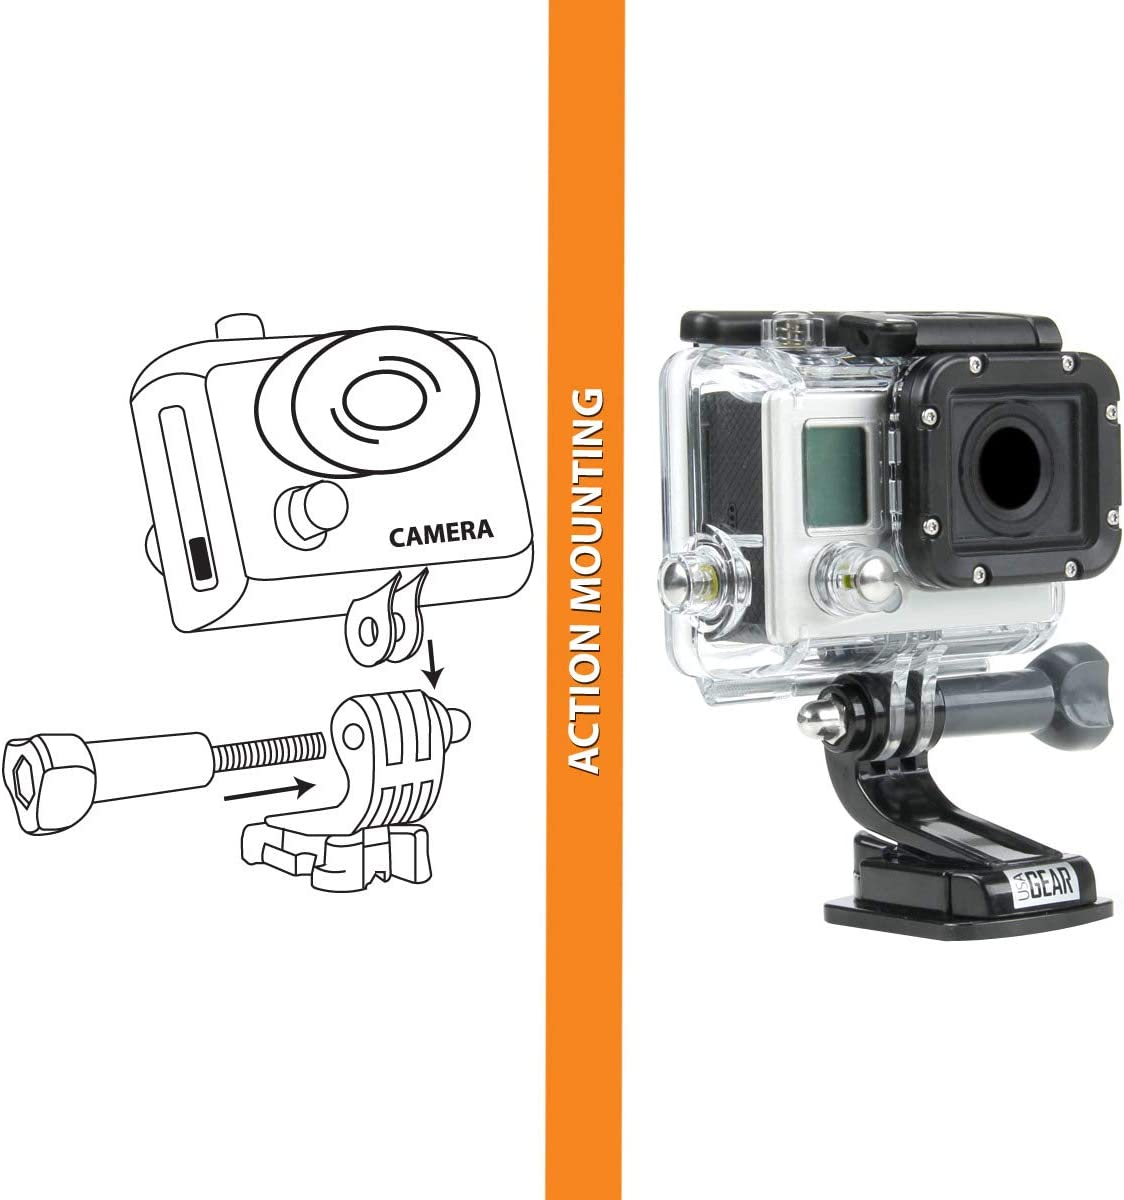 AKASO EK7000 /& More HERO5 Black//Session YI 4K Compatible with HERO6 Black USA Gear Waterproof Adhesive Action Camera Mount w//Industrial Hold Base; Included J Hook and Tripod Screw Adapter